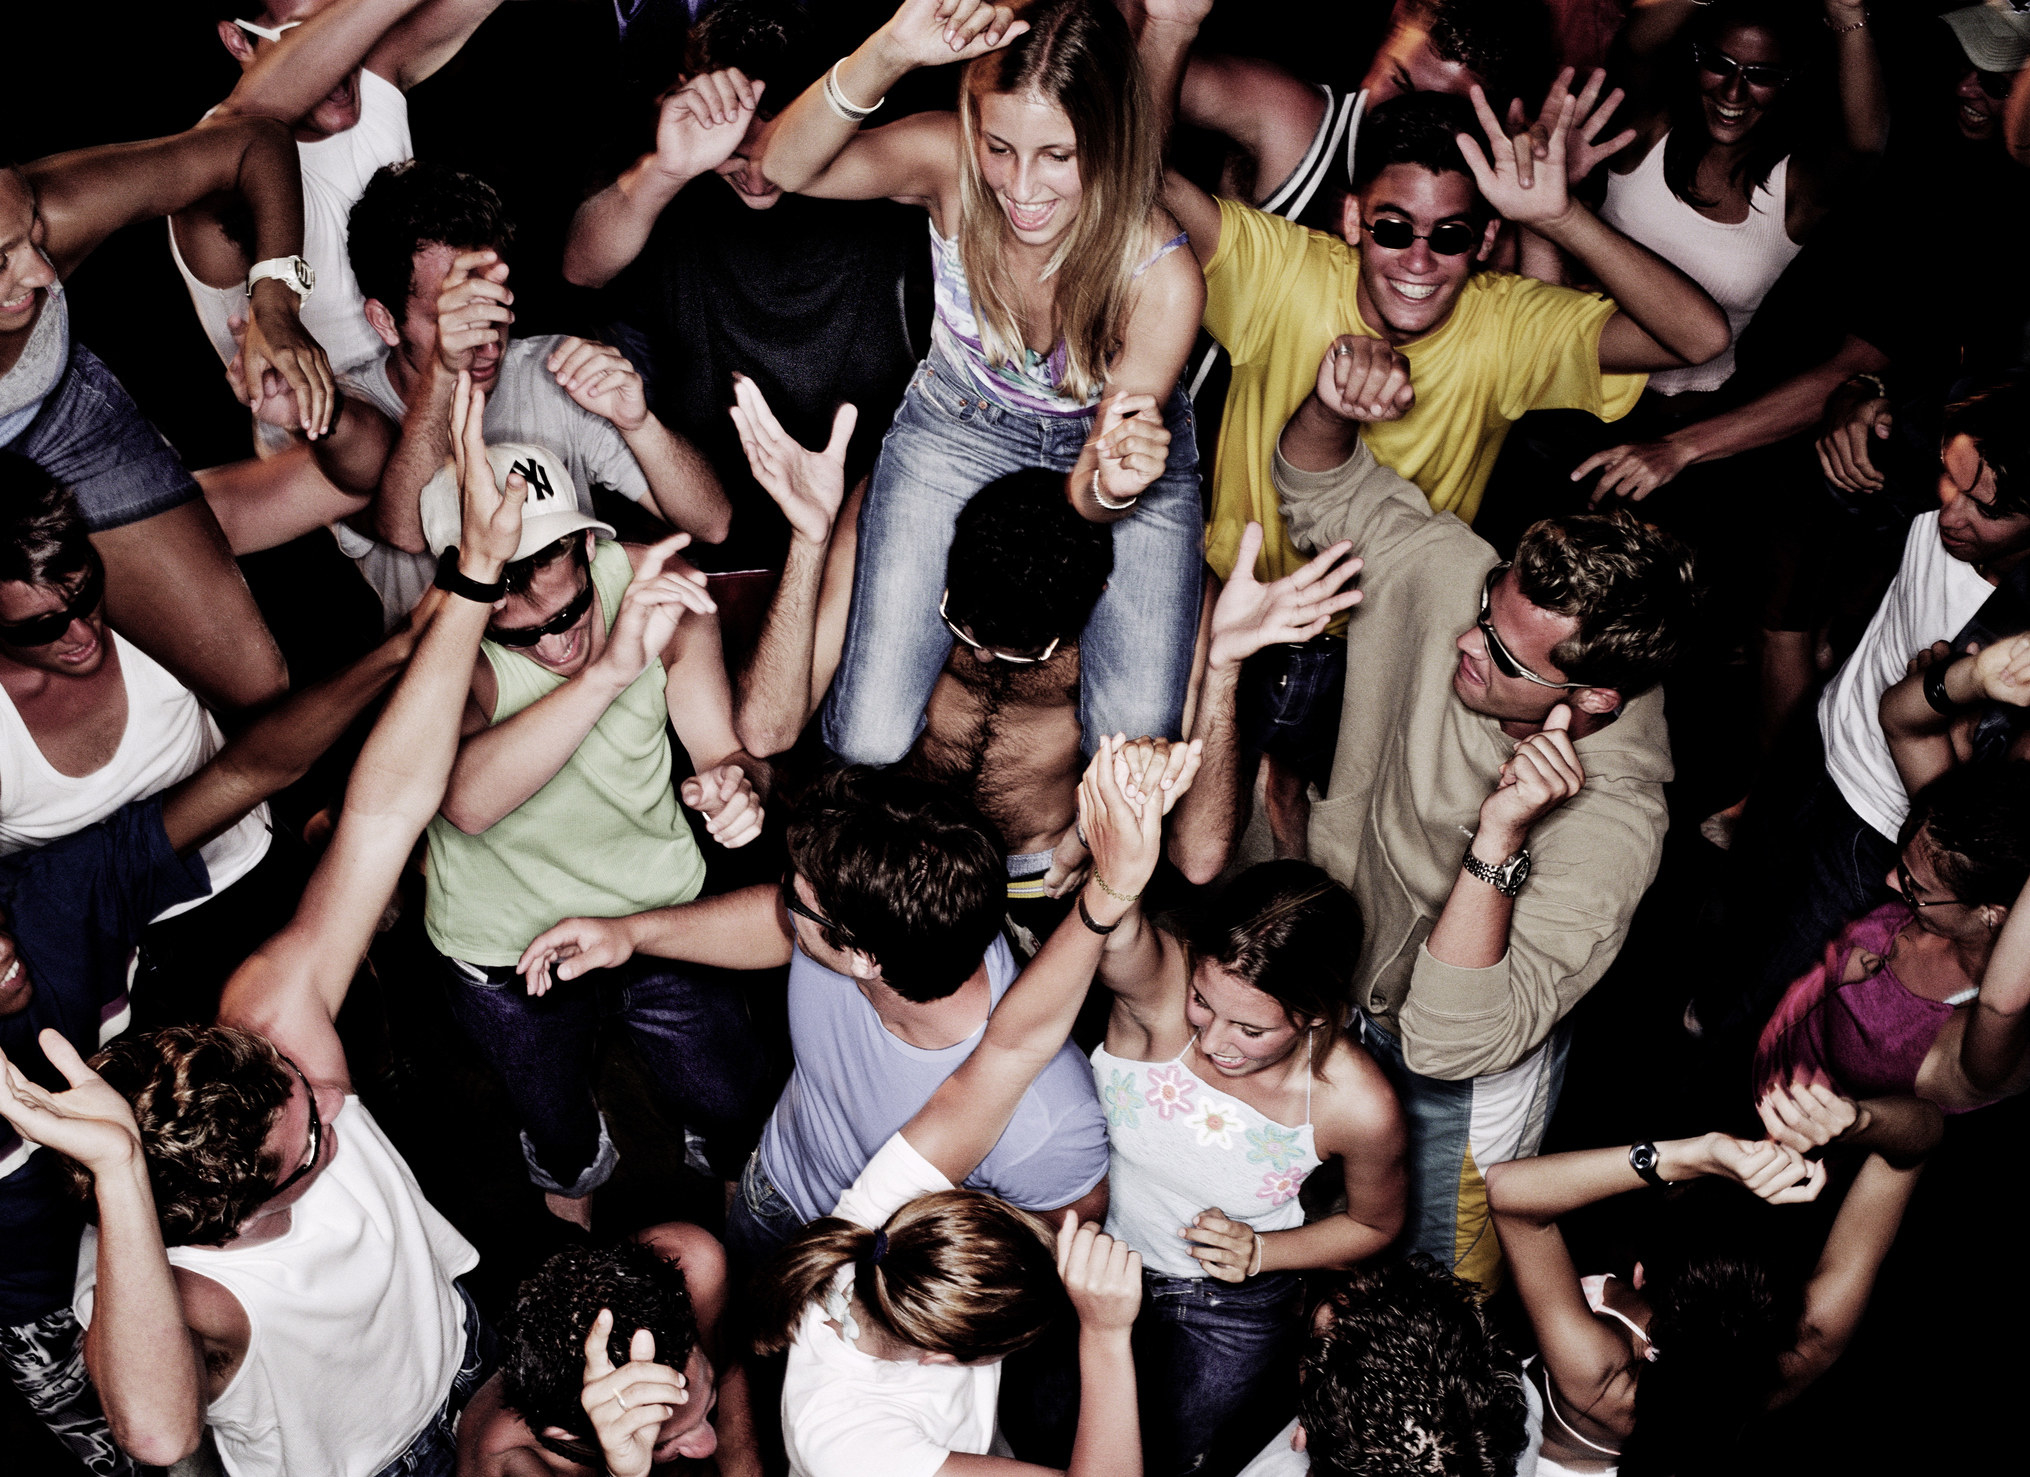 A group of people dancing at a packed party